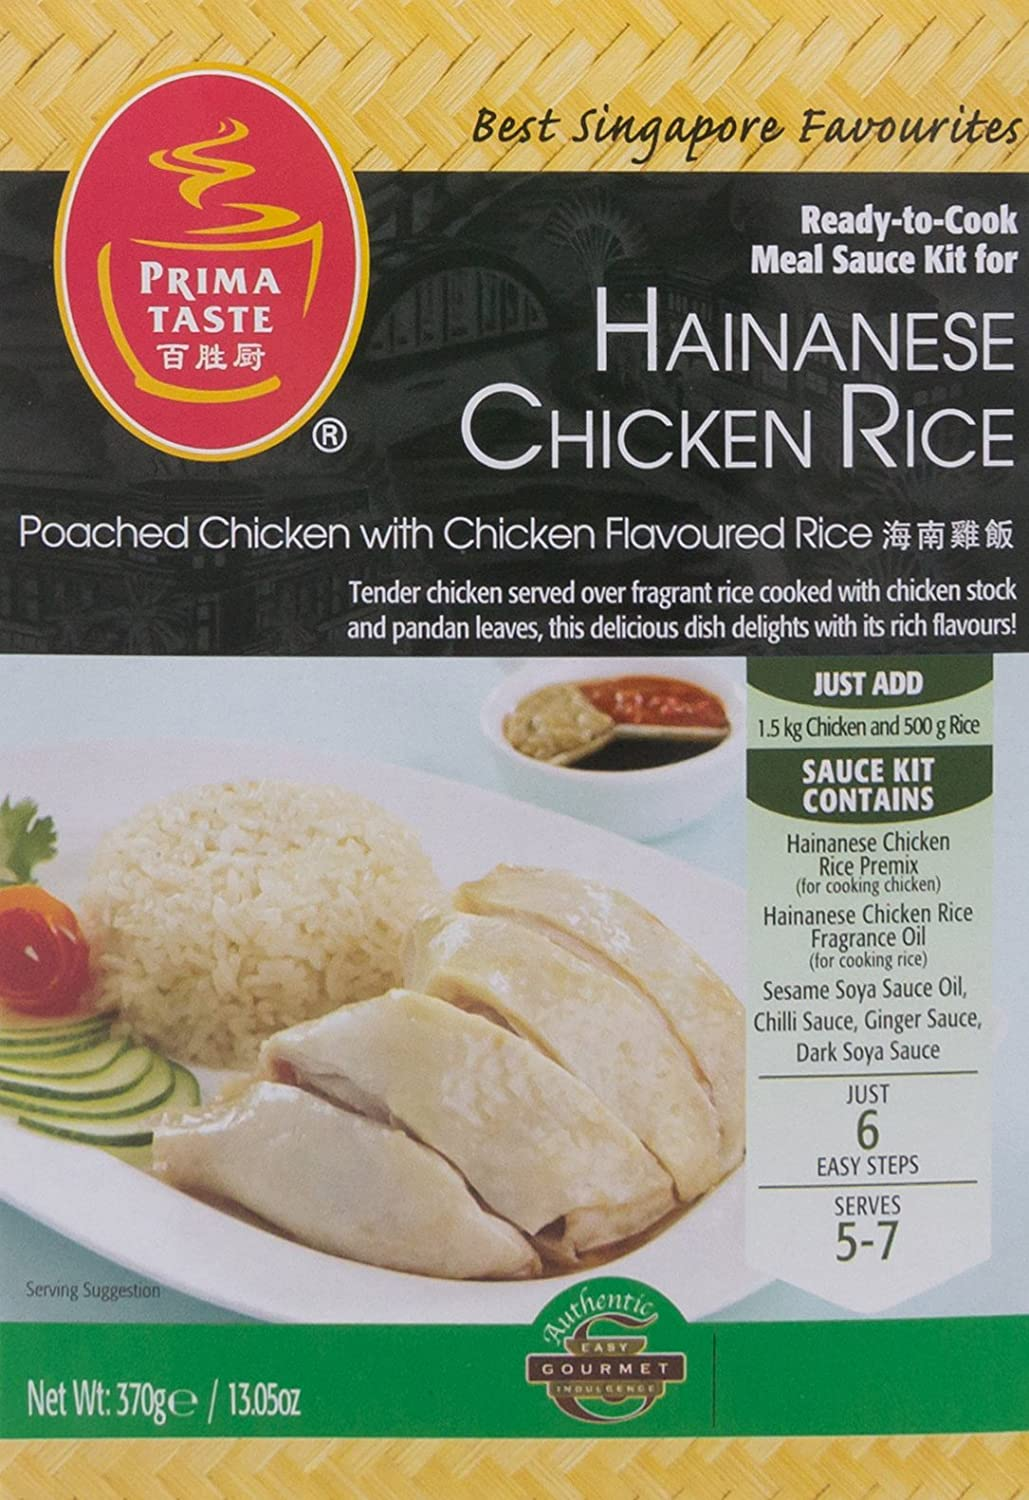 Prima Taste Ready To Cook Sauce Kit For Hainanese Chicken Rice 370g Amazon Co Uk Grocery